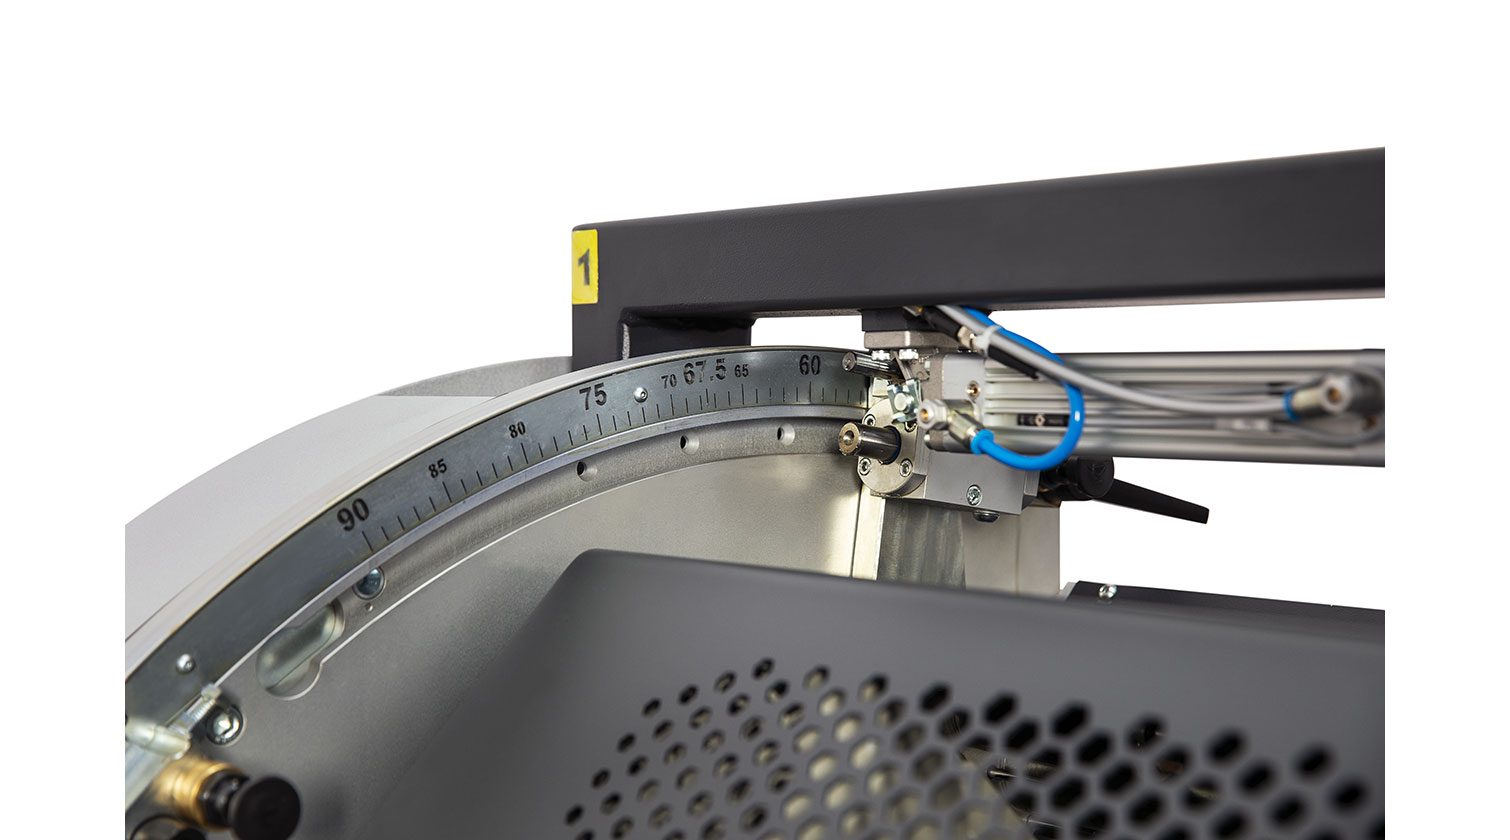 INT pvc double mitre saw Yilmaz DC 550 cutting head angle adjustment detail